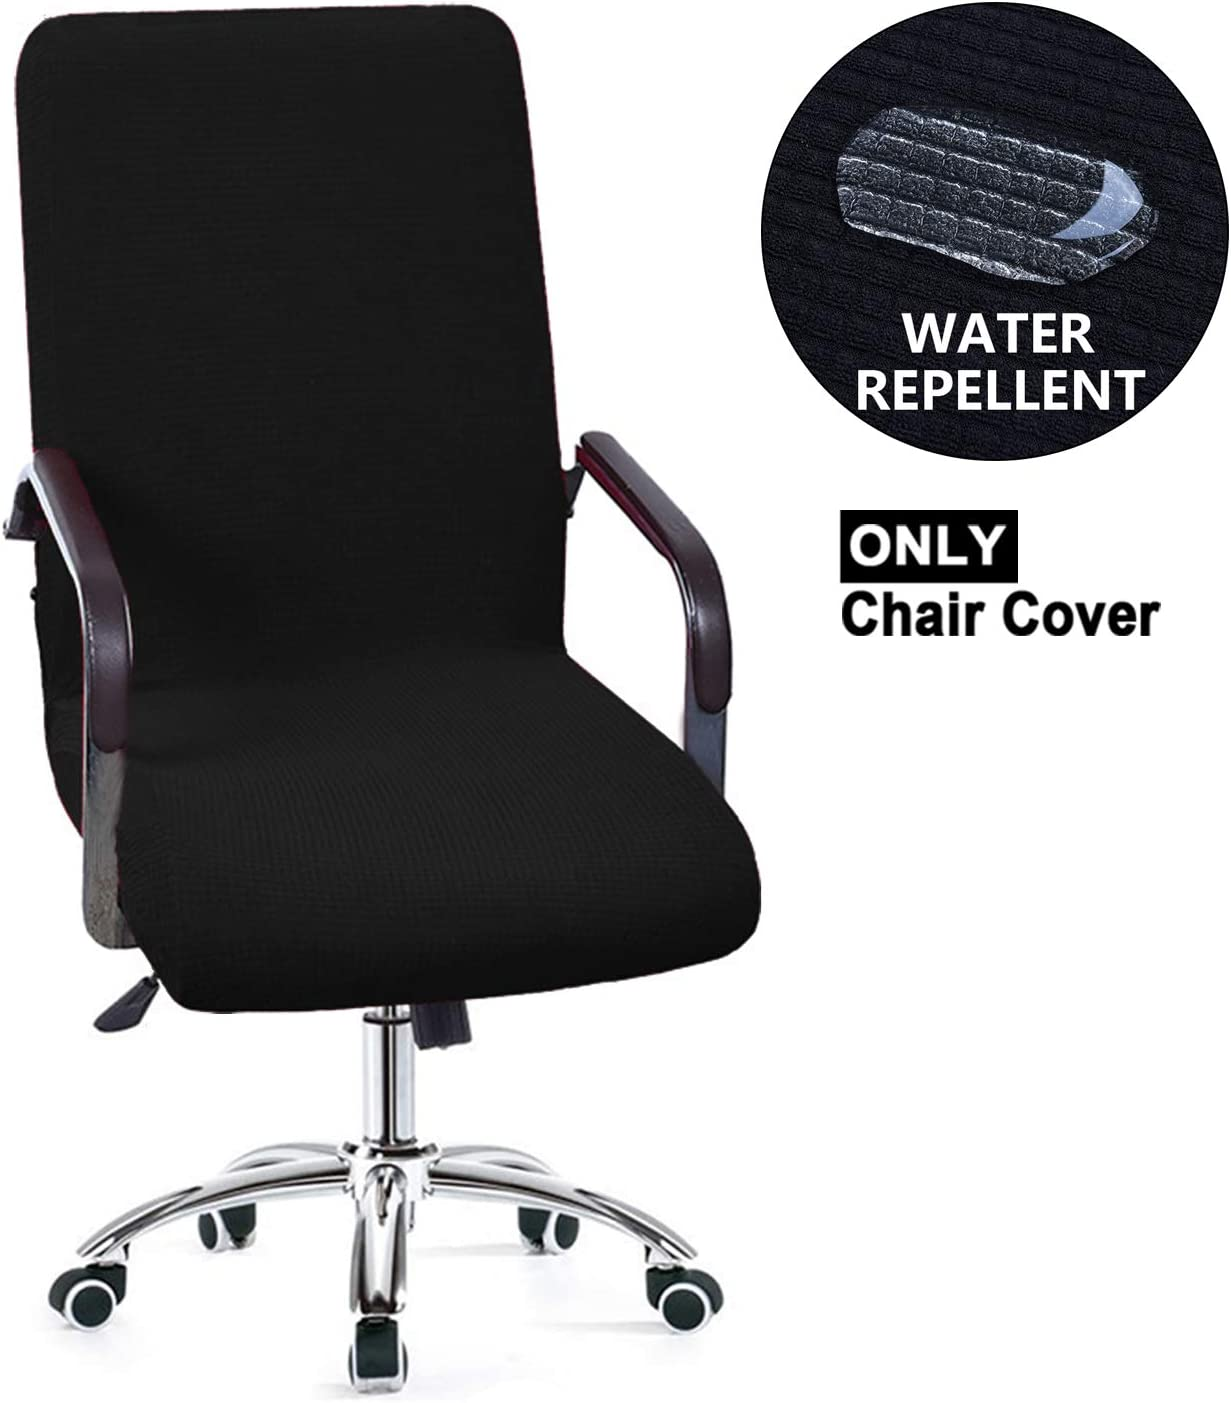 NC HOME Waterproof Office Chair Slipcover, Removable Washable Anti-dust Universal Chair Covers for High-Back Executive Chair (Medium, Black)